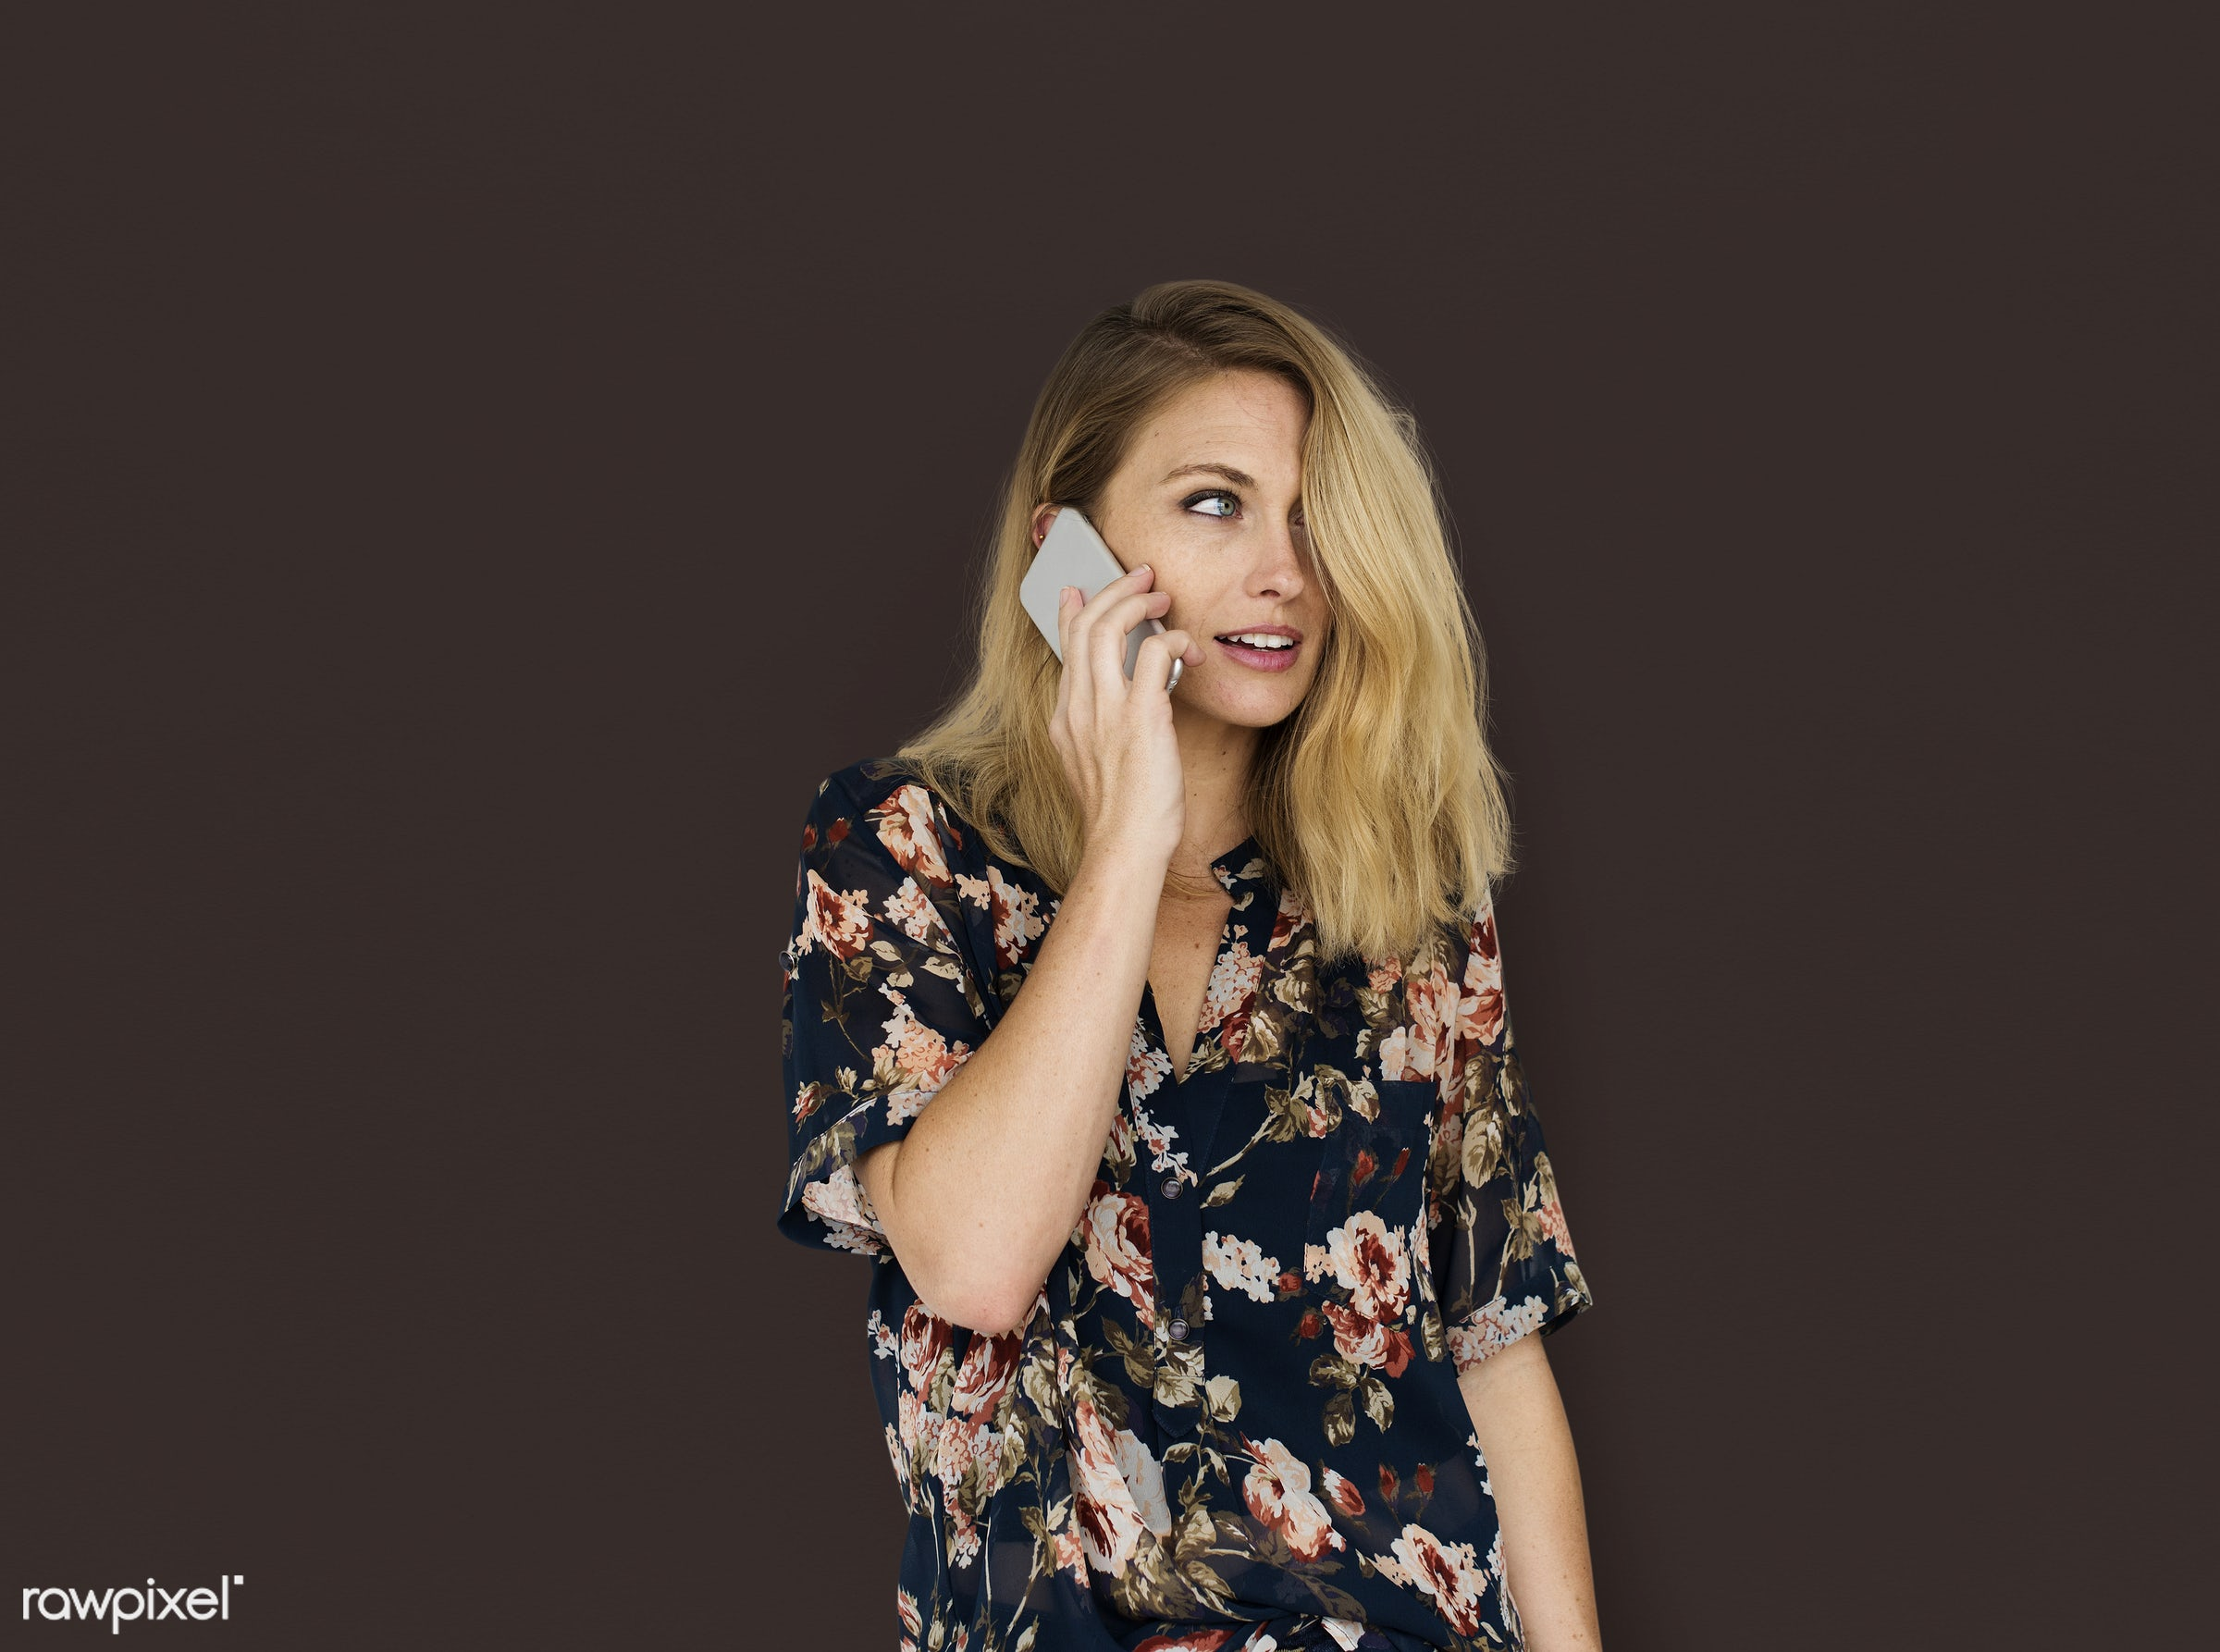 expression, studio, using, person, discussion, single, people, caucasian, telecommunication, woman, lifestyle, mobile phone...